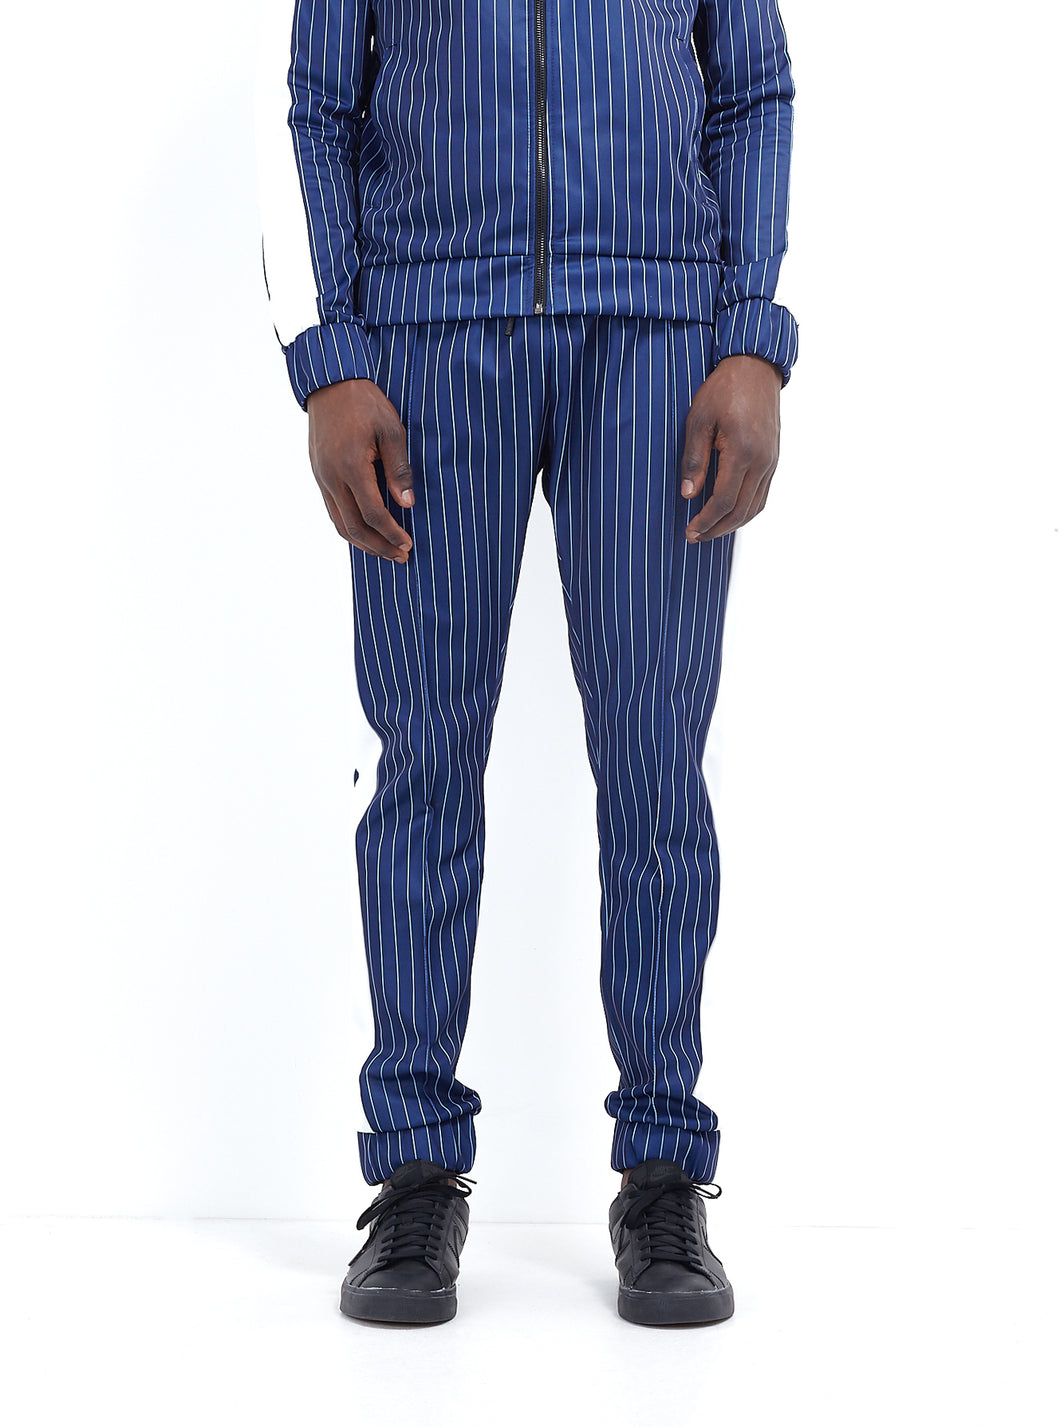 TECHNICAL TRACK PANTS - NAVY PINSTRIPE